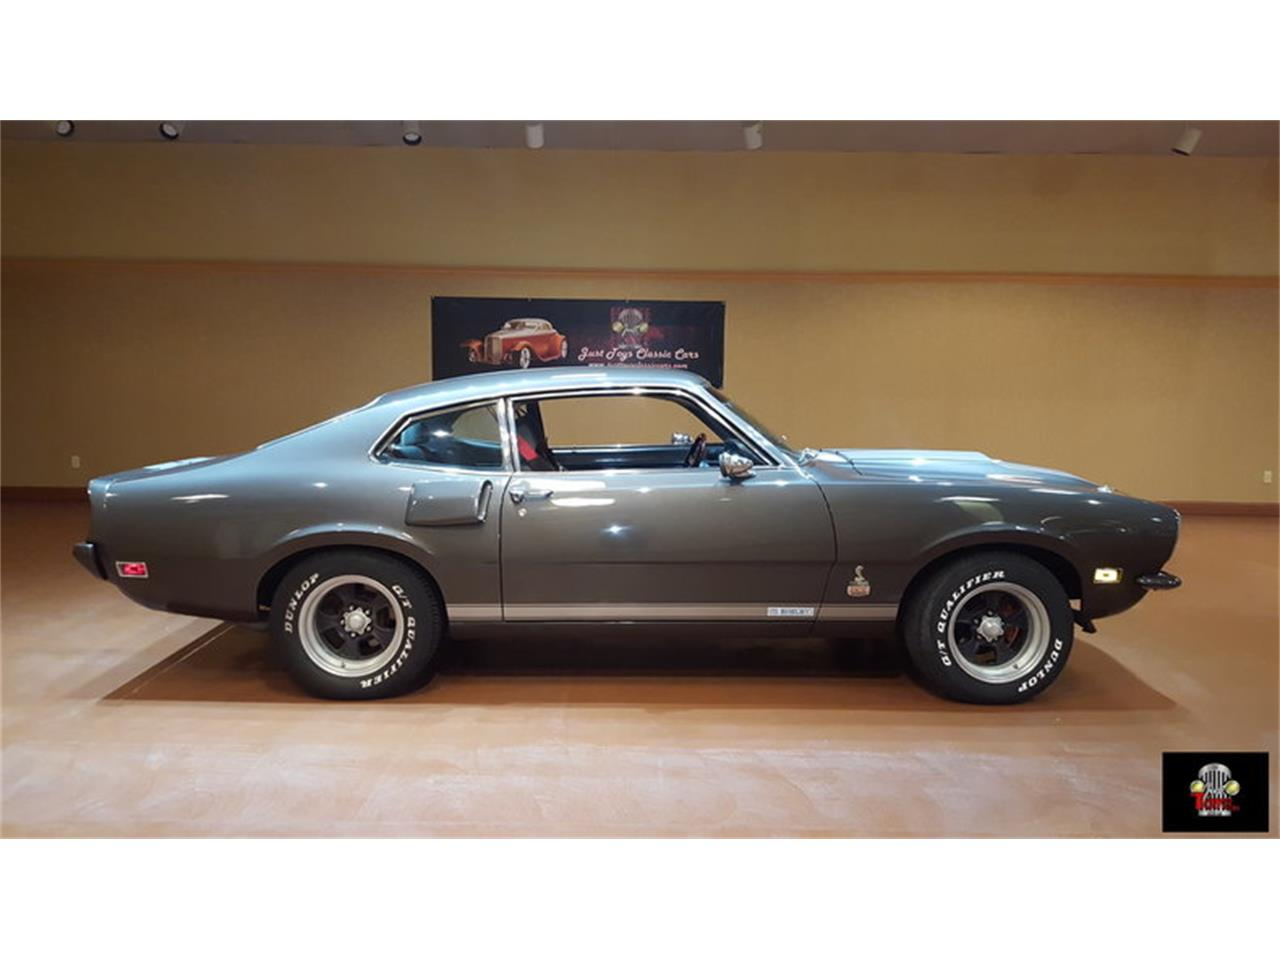 Trucks For 5000 And Under >> 1973 Ford Maverick Shelby Tribute for Sale | ClassicCars.com | CC-912930